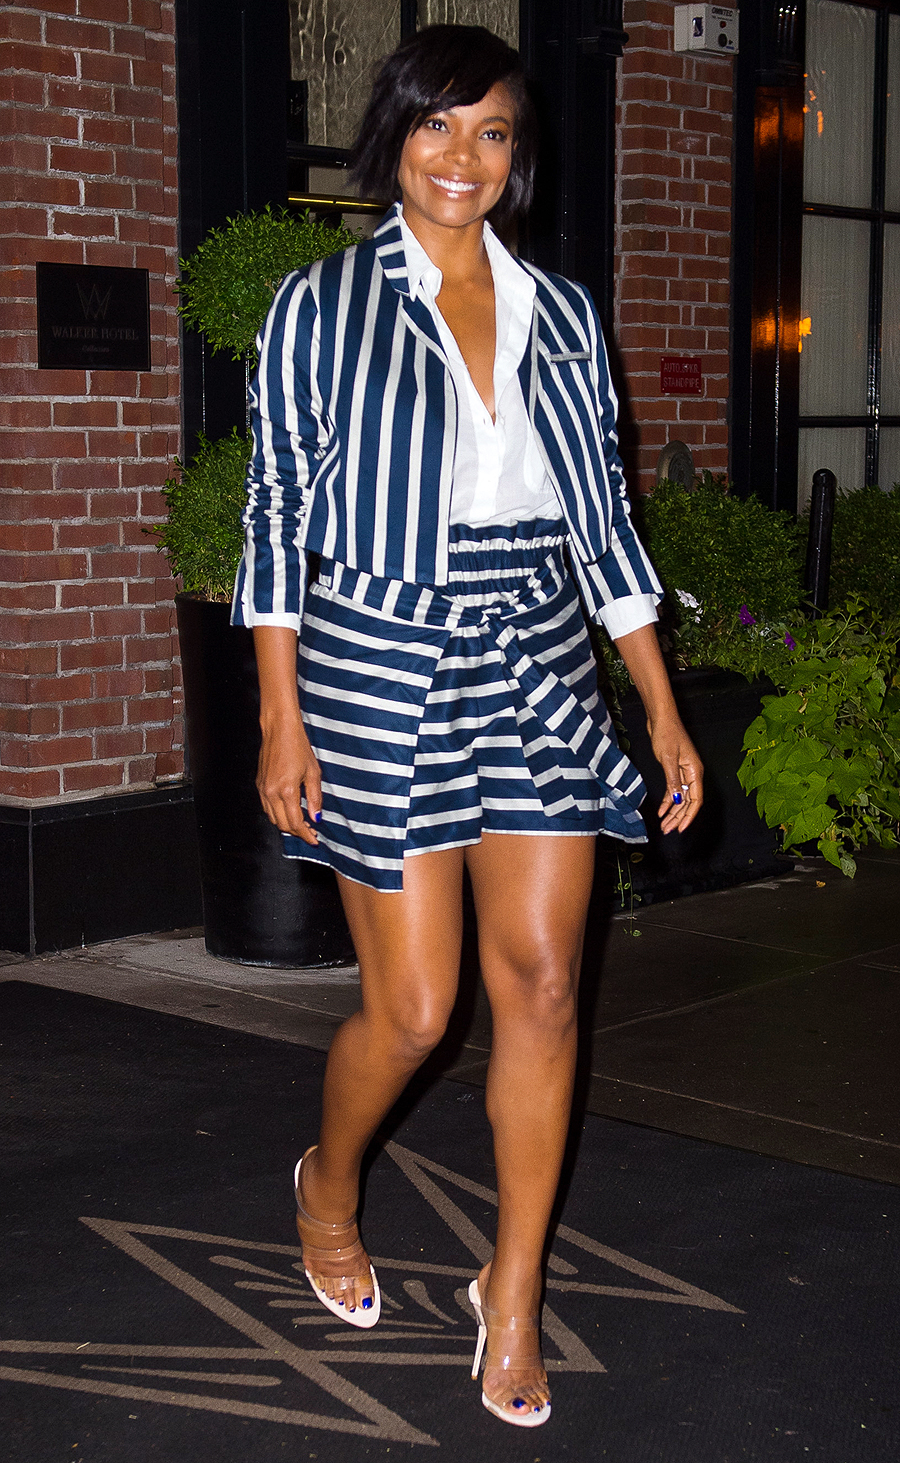 EXCLUSIVE: Gabrielle Union is all smiles as she heads out in a blue and white stripped top and skirt in New York City